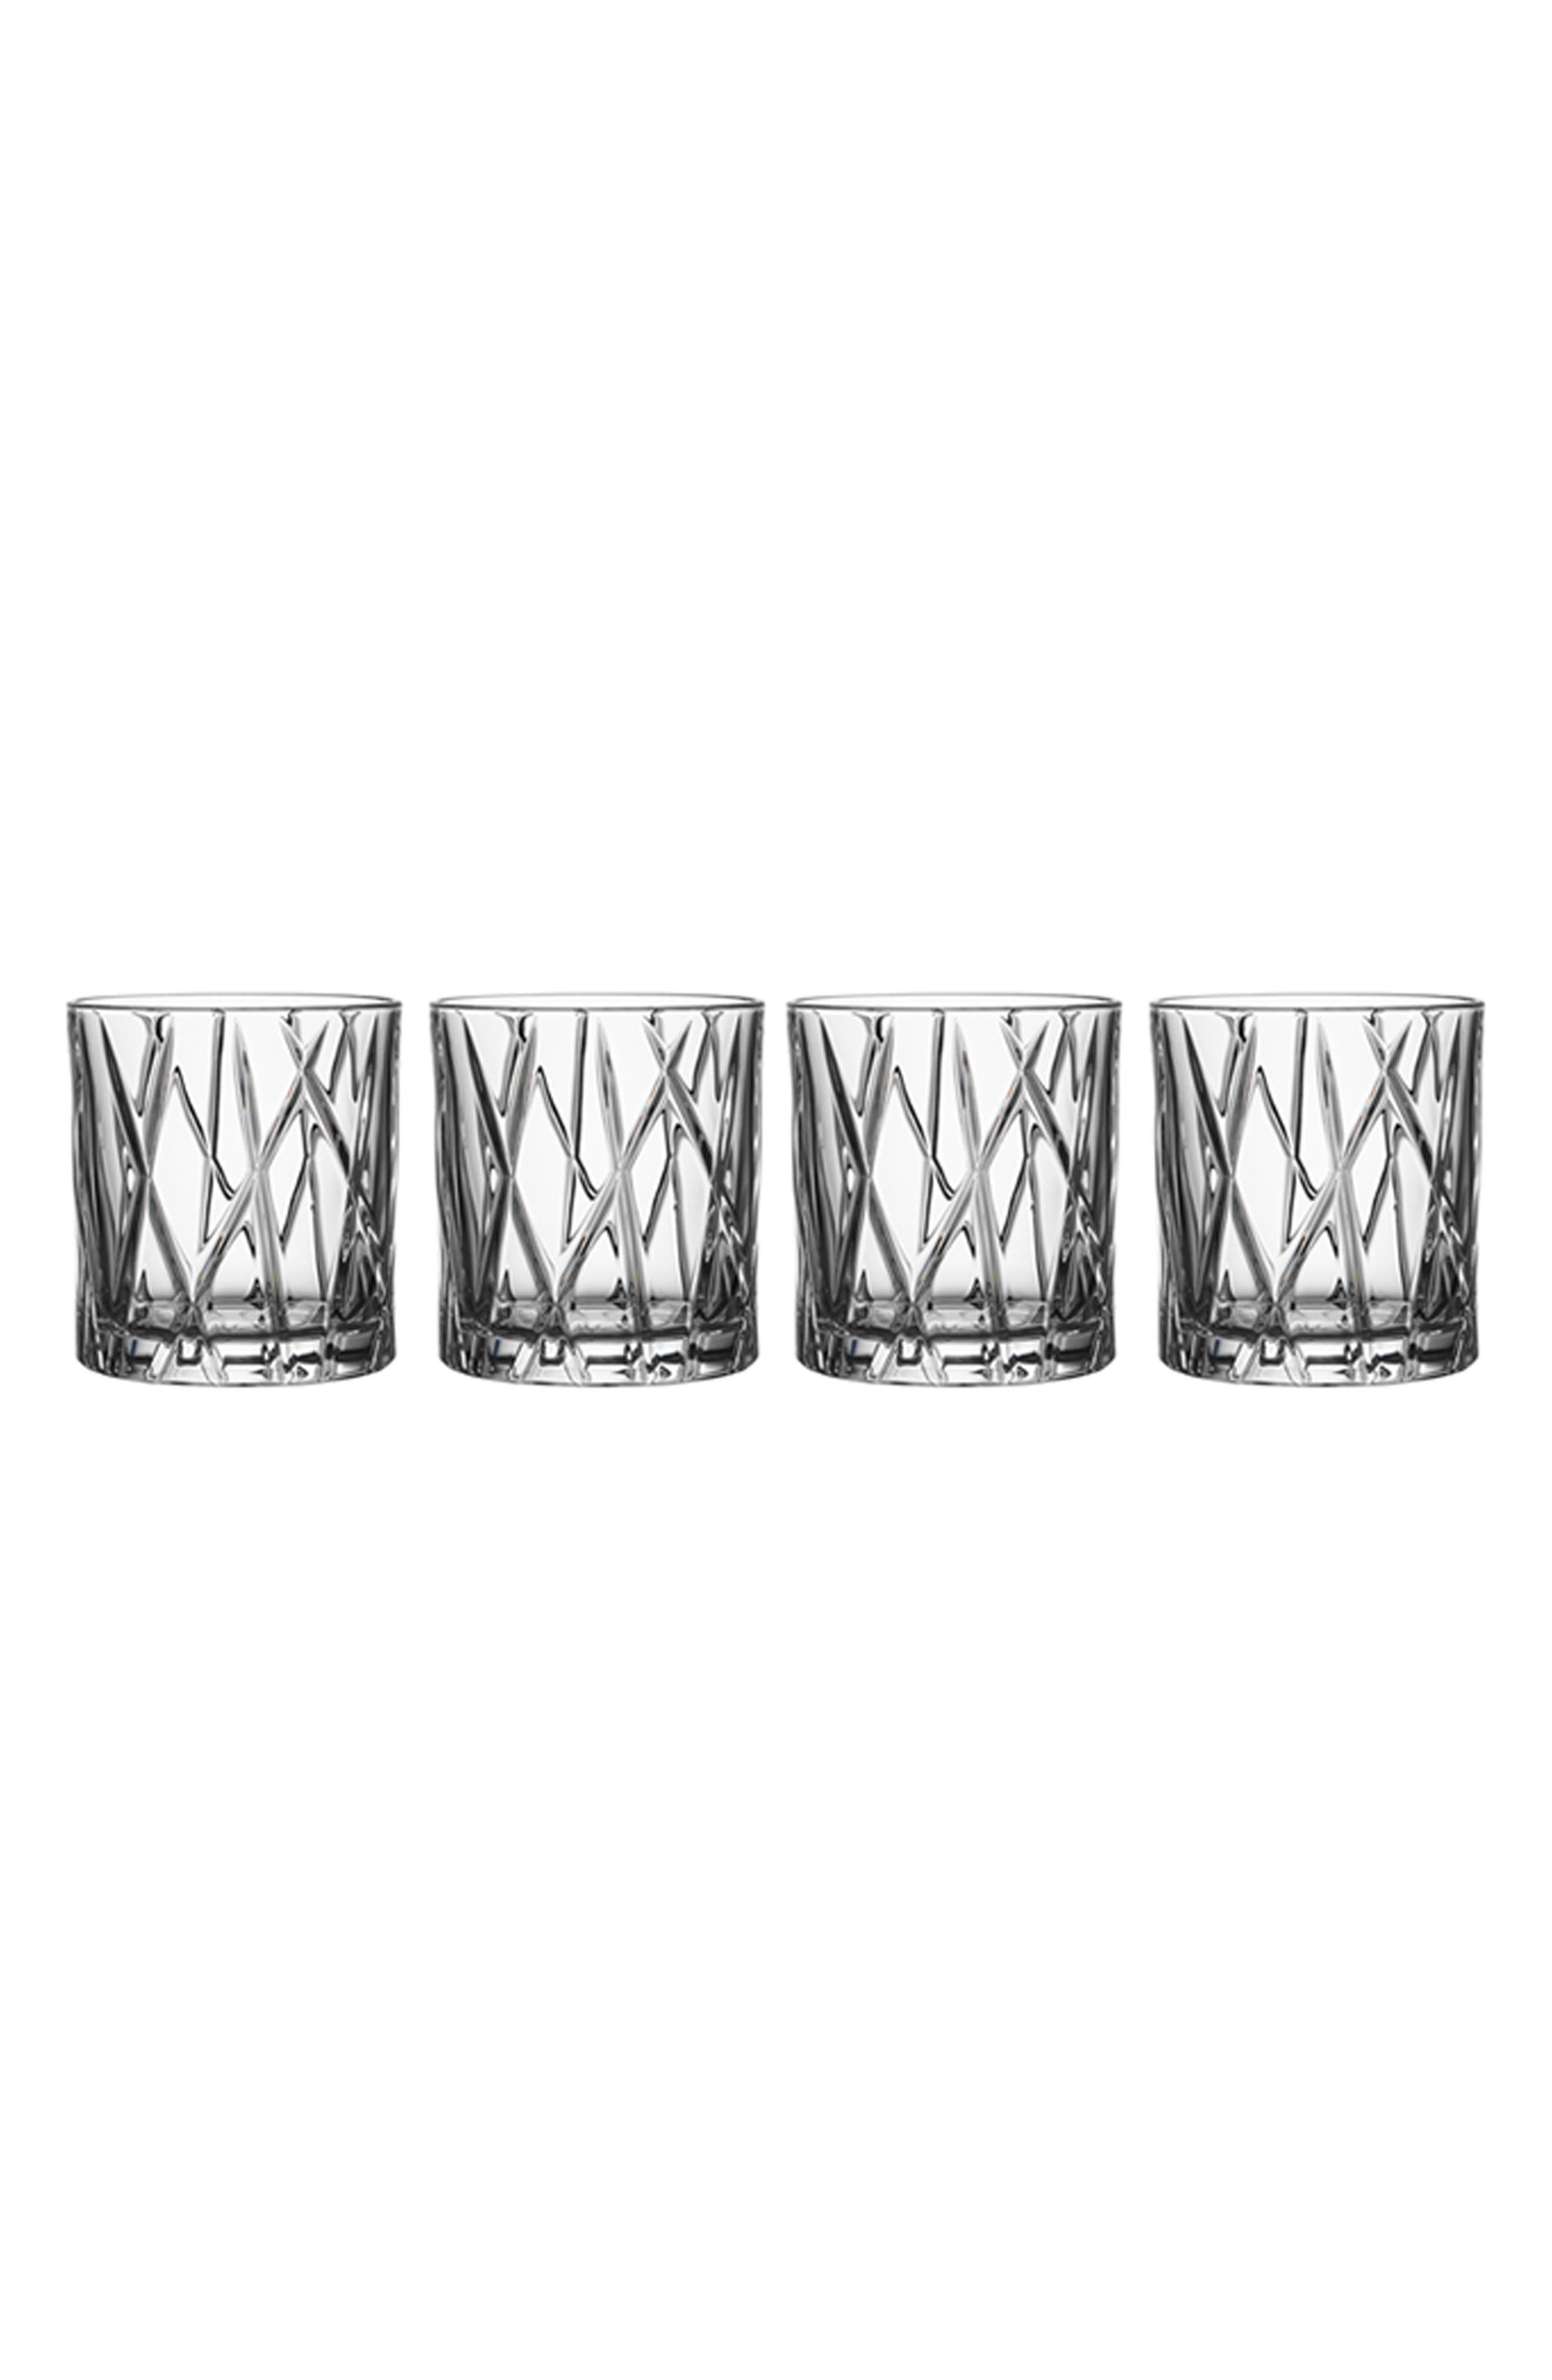 City Set of 4 Crystal Old Fashioned Glasses,                         Main,                         color, 100